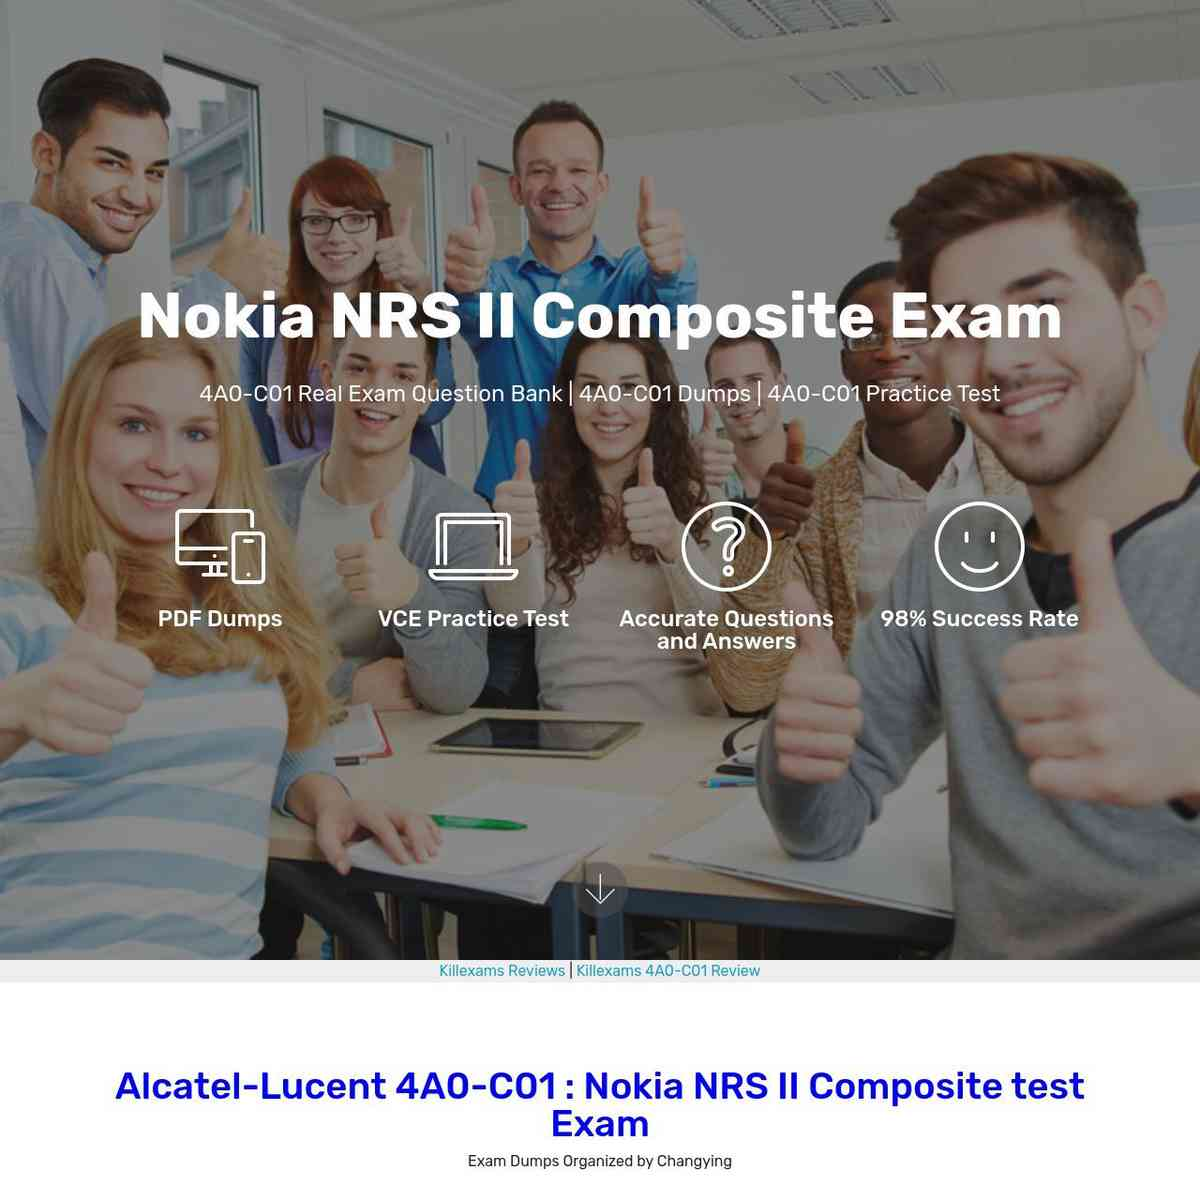 Download links for Latest Topics to pass 4A0-C01 exam